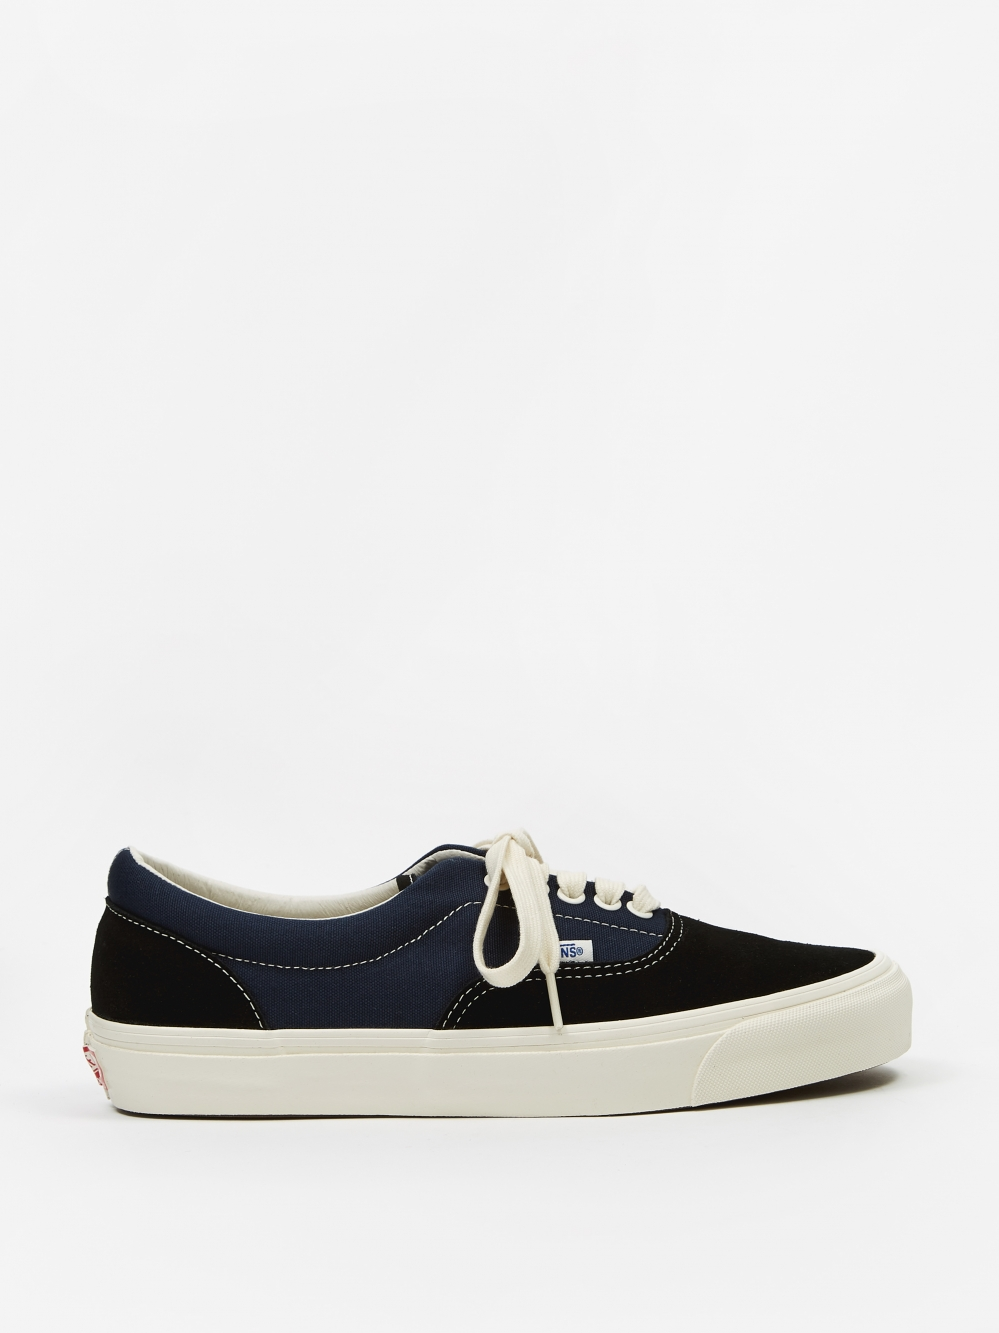 984fce23f22e Vans Vault OG Era LX - (Suede Canvas) Black Dress Blue (